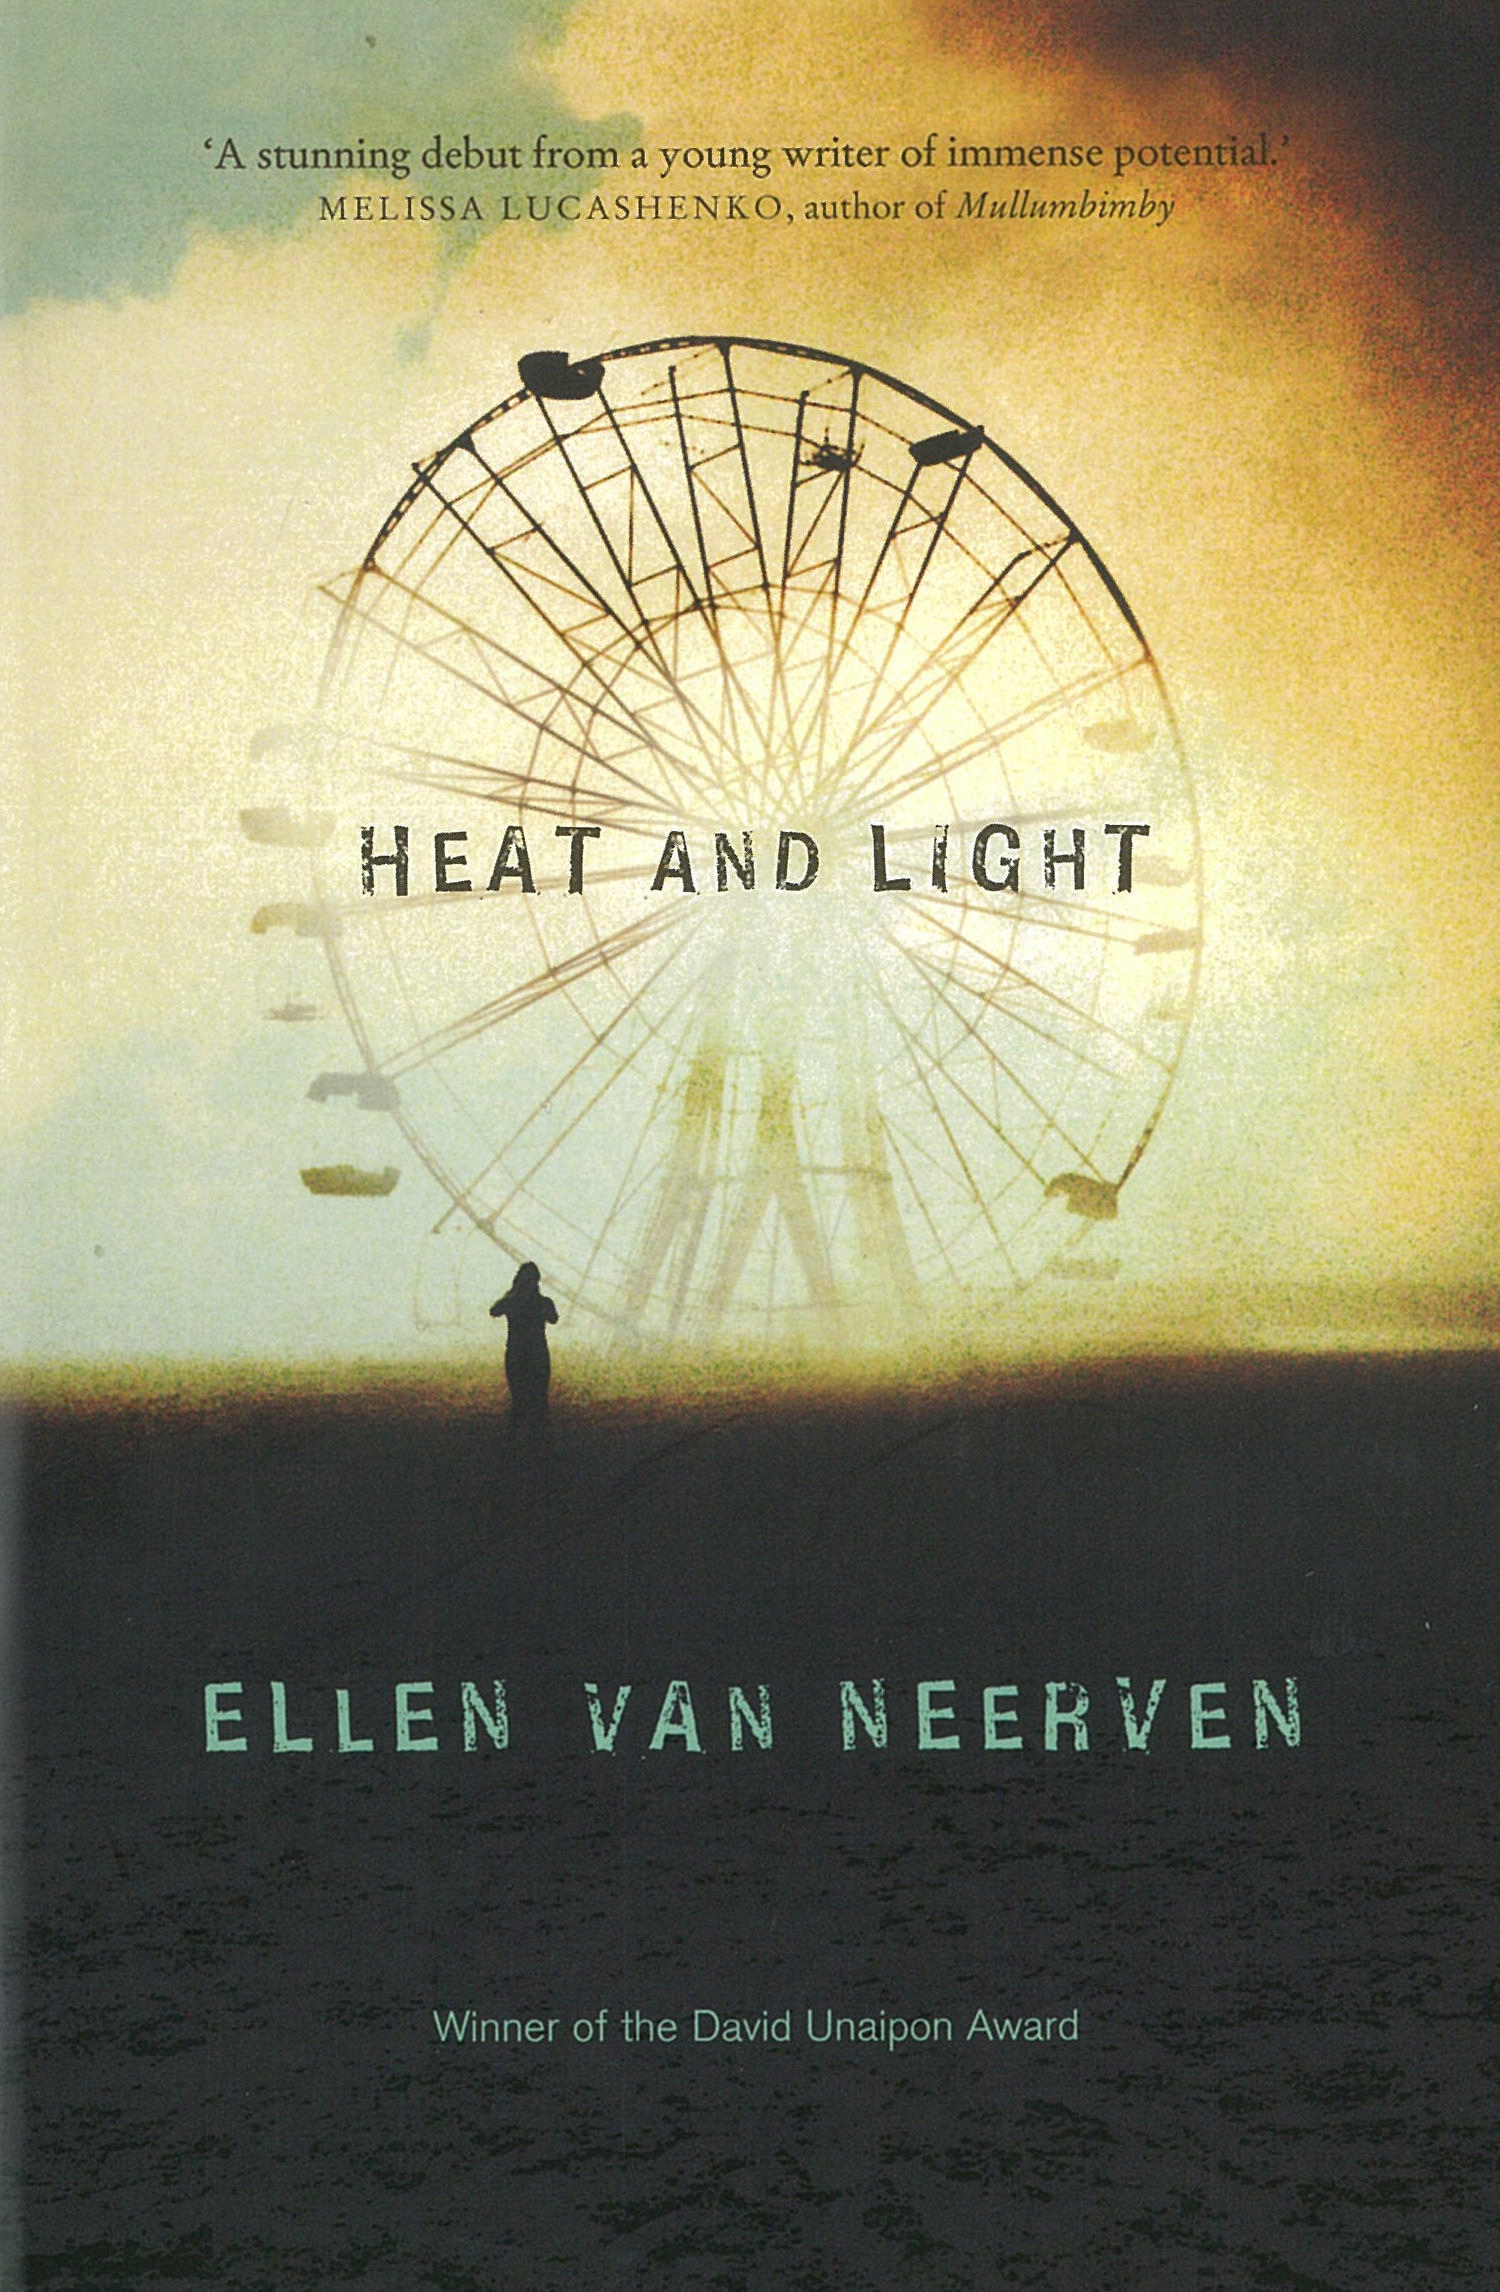 Cover Art for Heat and Light, ISBN: 9780702253218